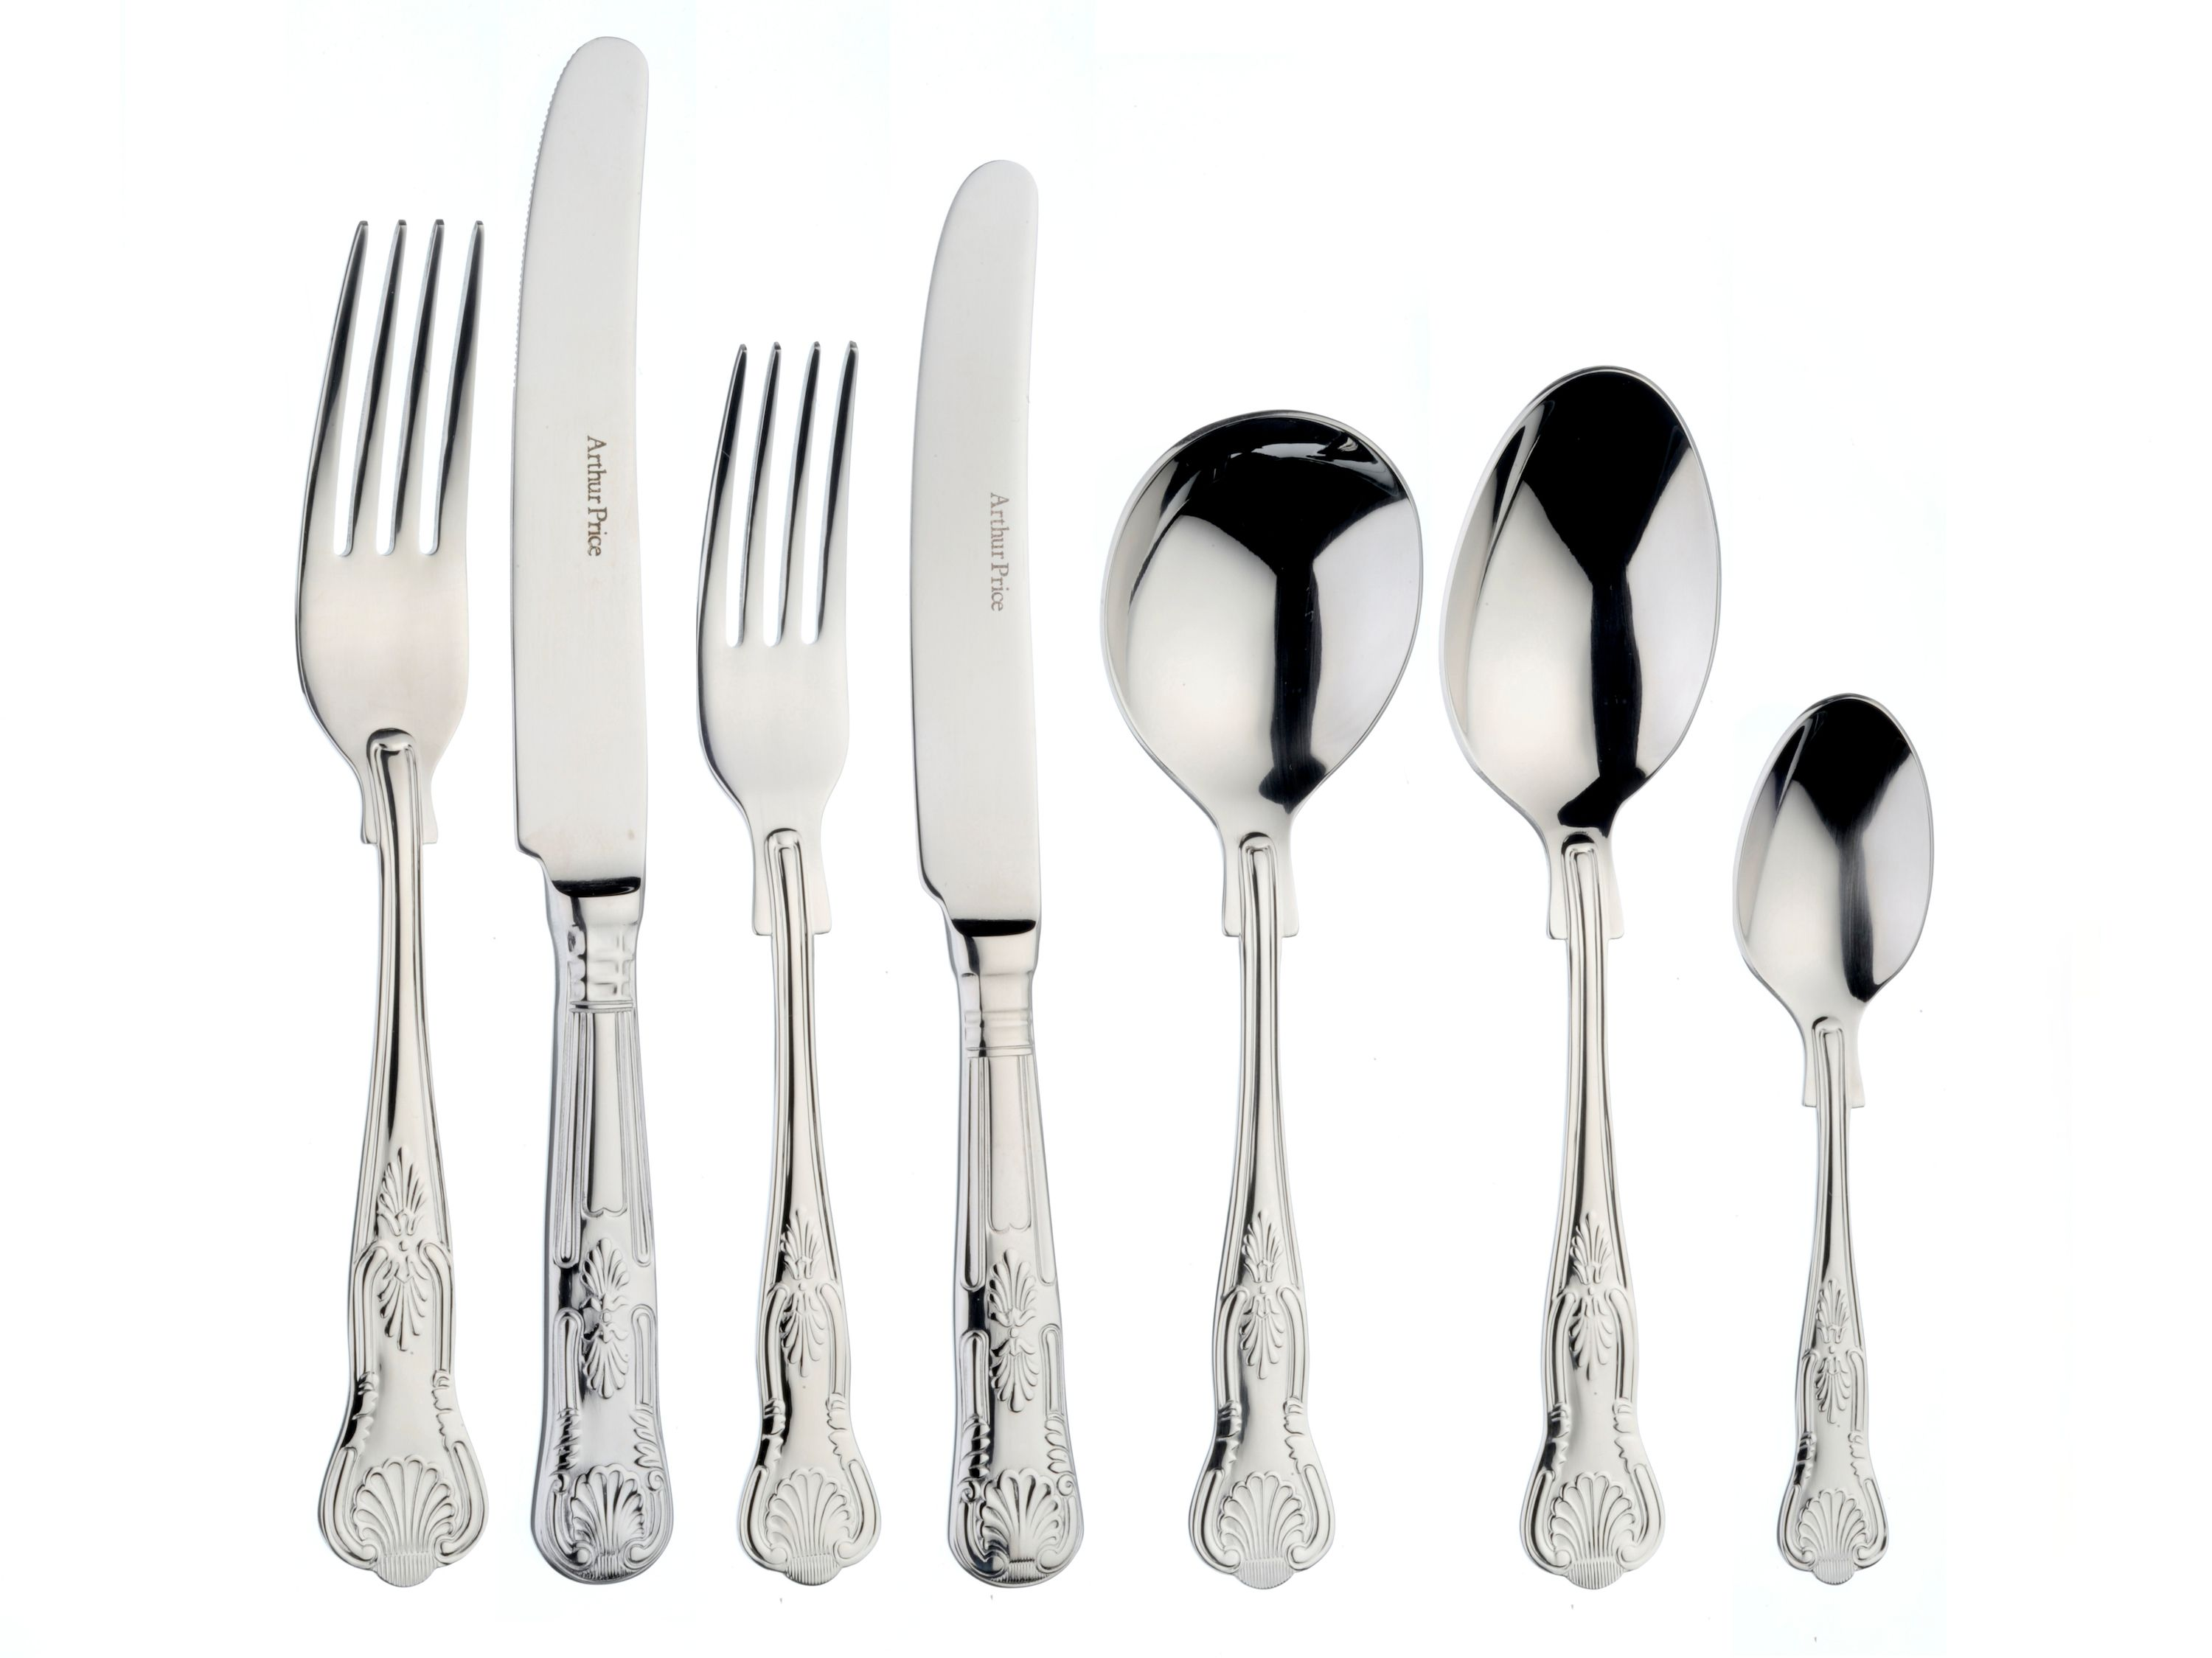 Kings stainless steel 7 piece place setting